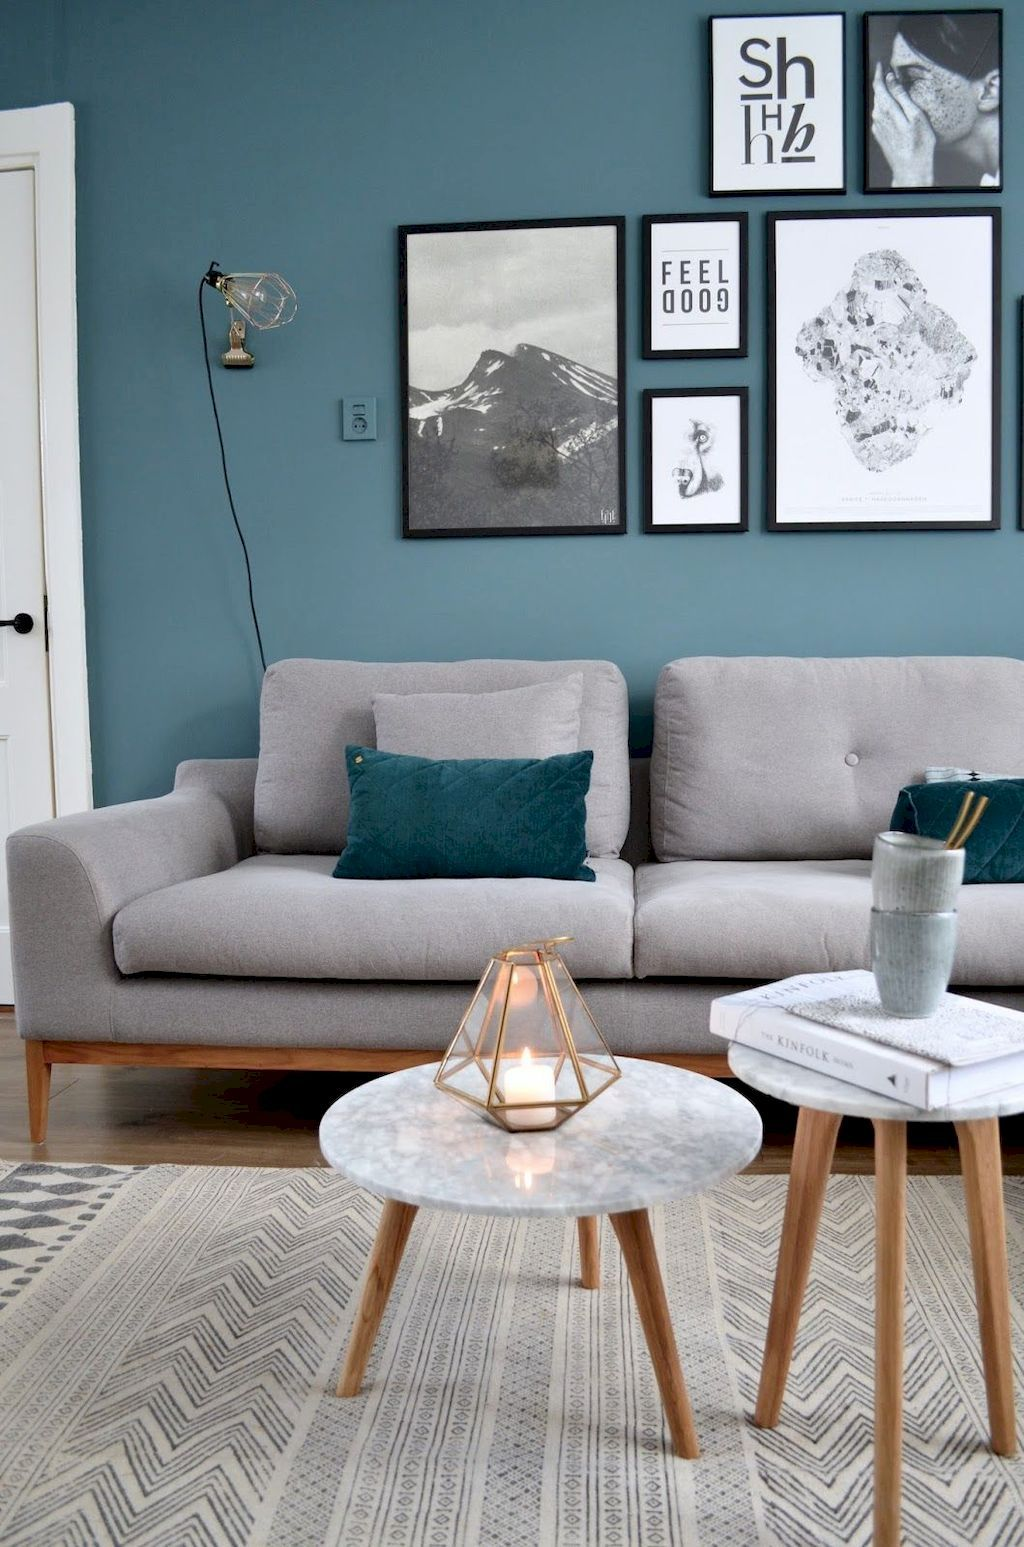 Small Tips And 80 Scandinavian Style Living Room Ideas Https Decorationplan Com Small Tips Blue Living Room Scandinavian Design Living Room Living Room Grey